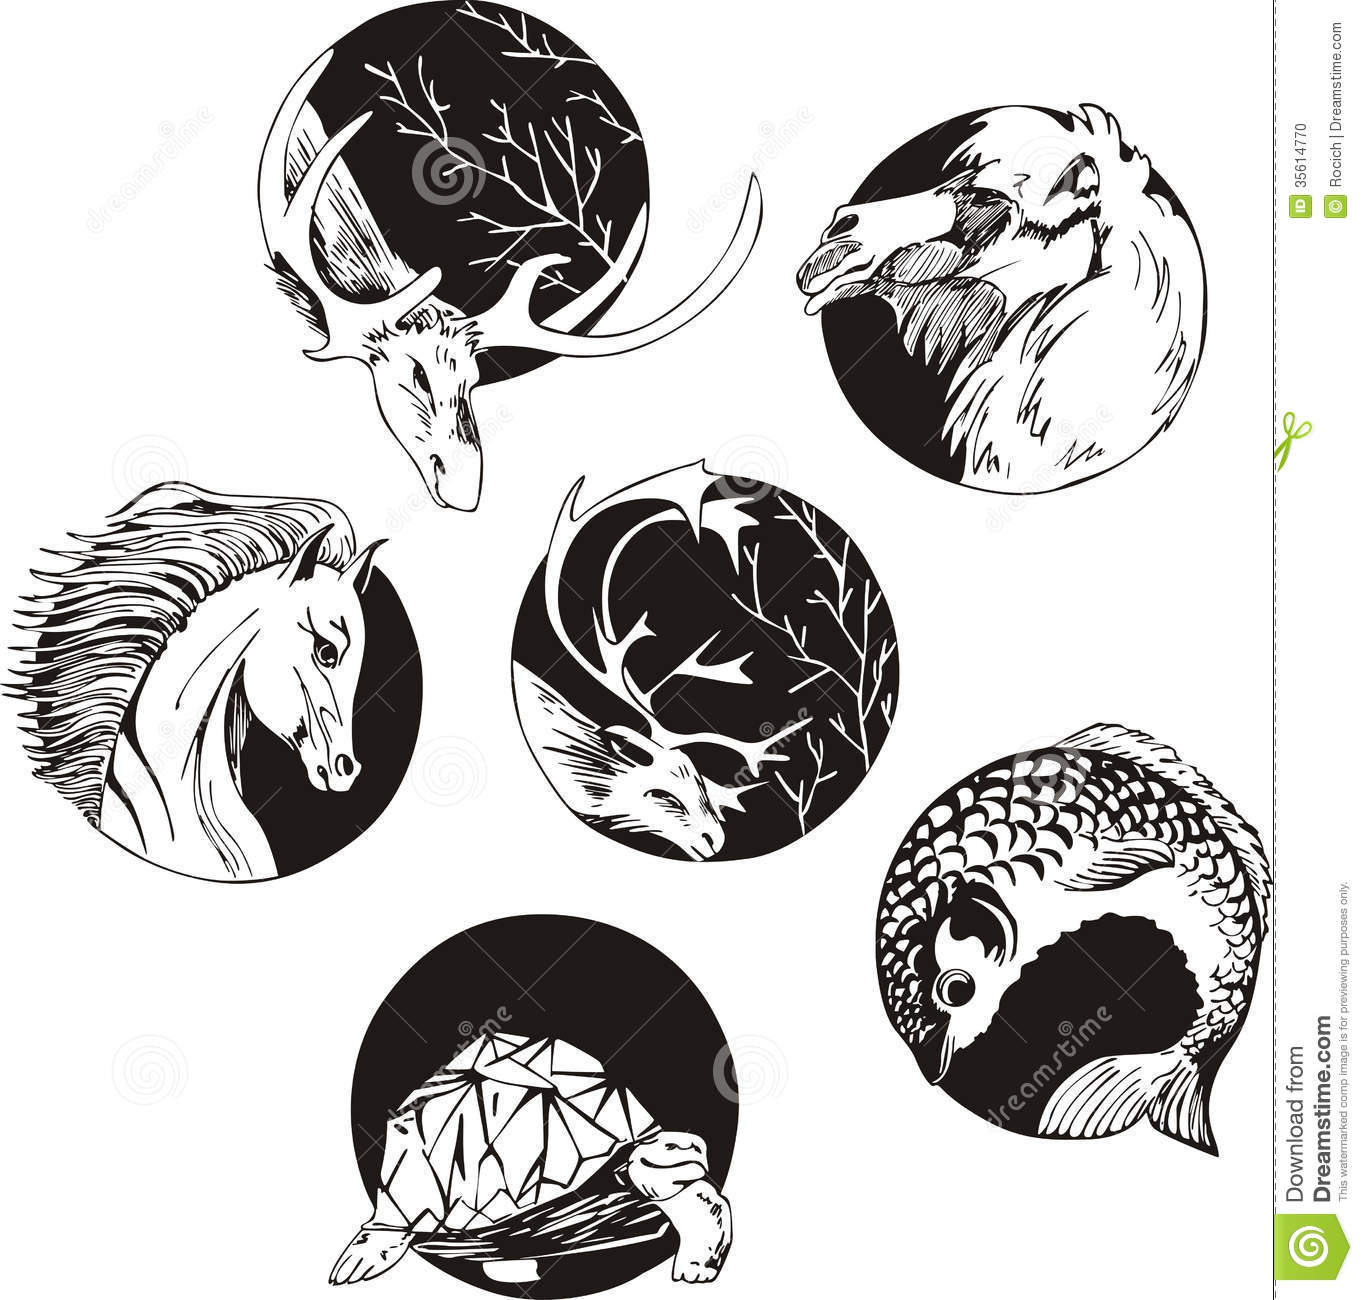 Geisha N Dragon Tattoo 115616355 further Baby Horse Coloring besides Stock Photo Round Designs Animals Set Black White Vector Illustrations Image35614770 besides Ram Mascot Clipart likewise Cartoon Smiling Star 11772516. on black ram